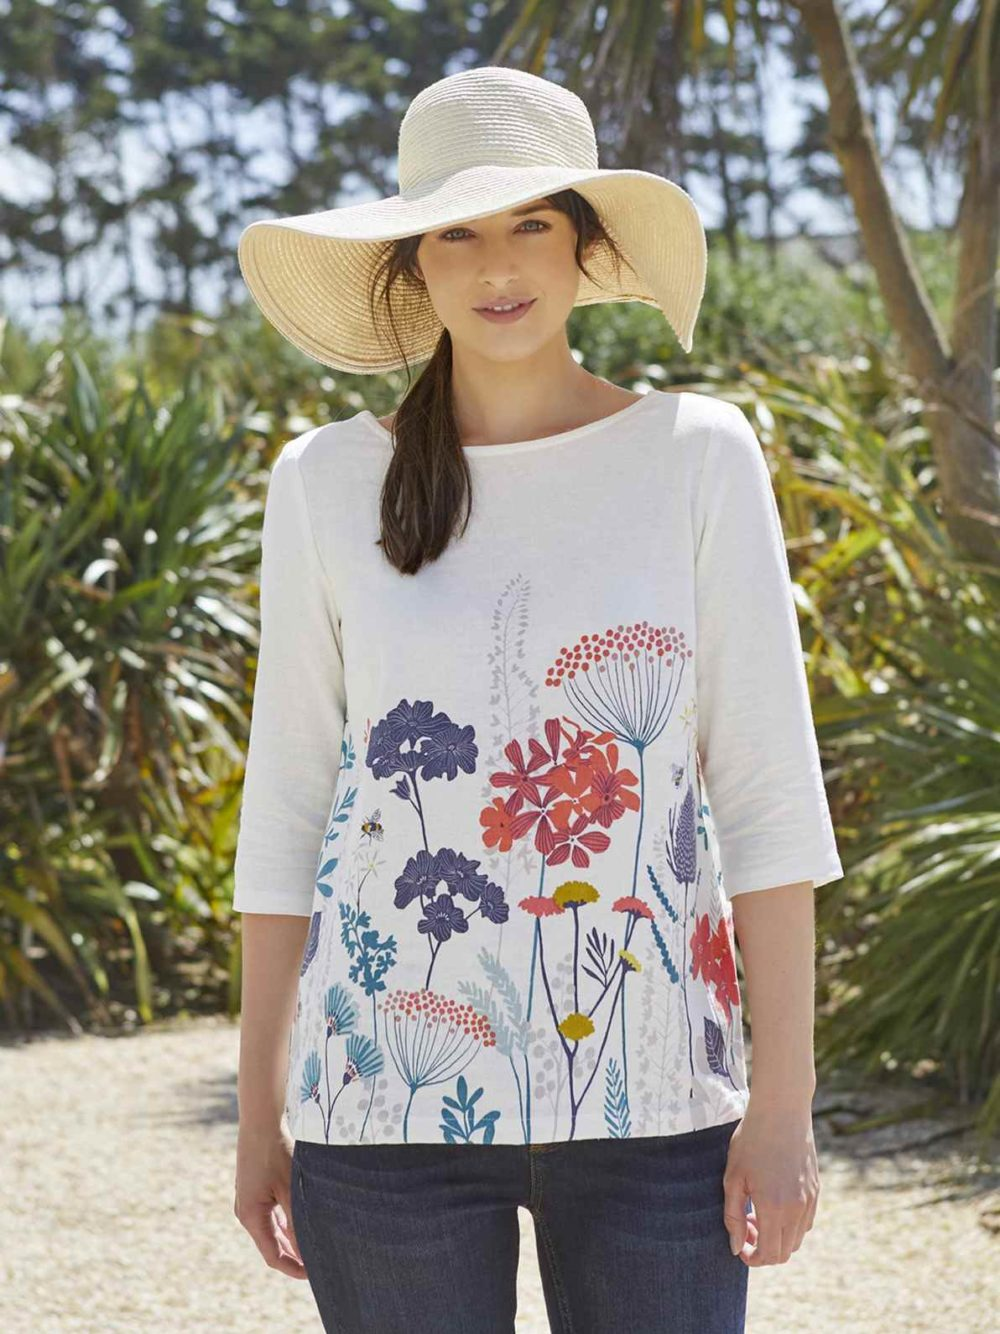 Border Print Top Floral Meadow Lily and Me Katie Kerr Women's Clothing